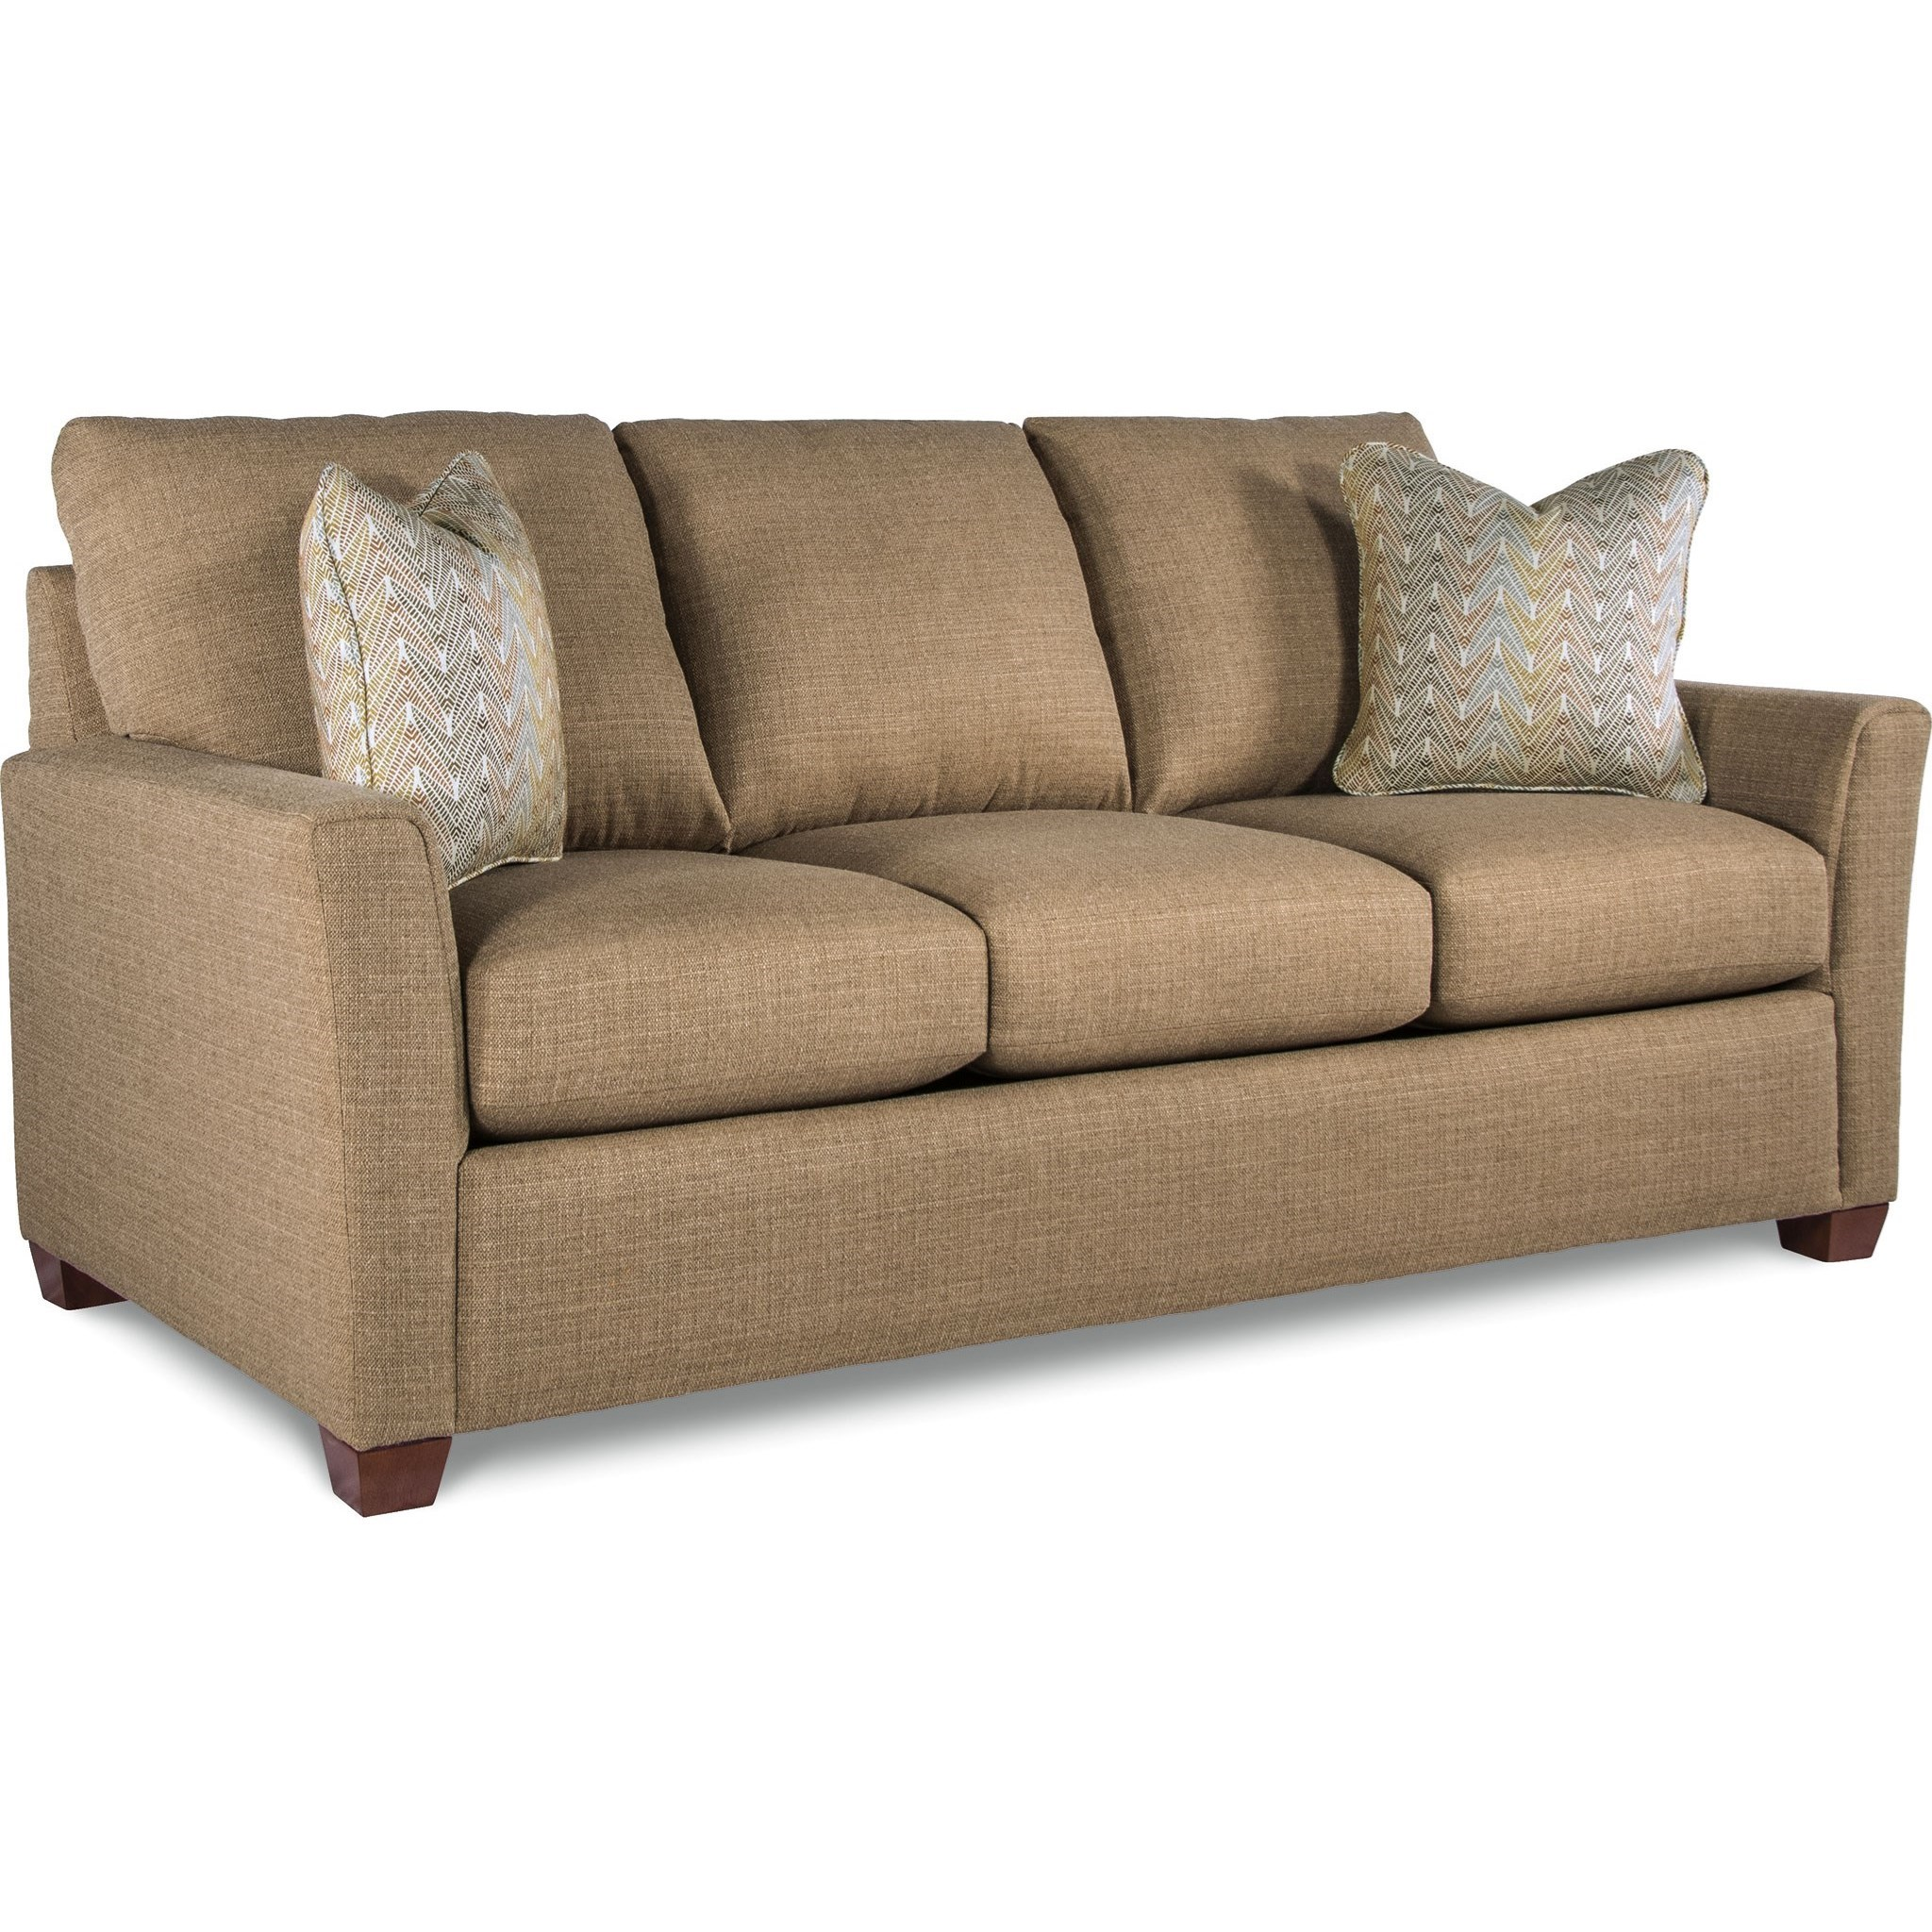 Comfortable Queen Sleeper Sofa Customize And Personalize